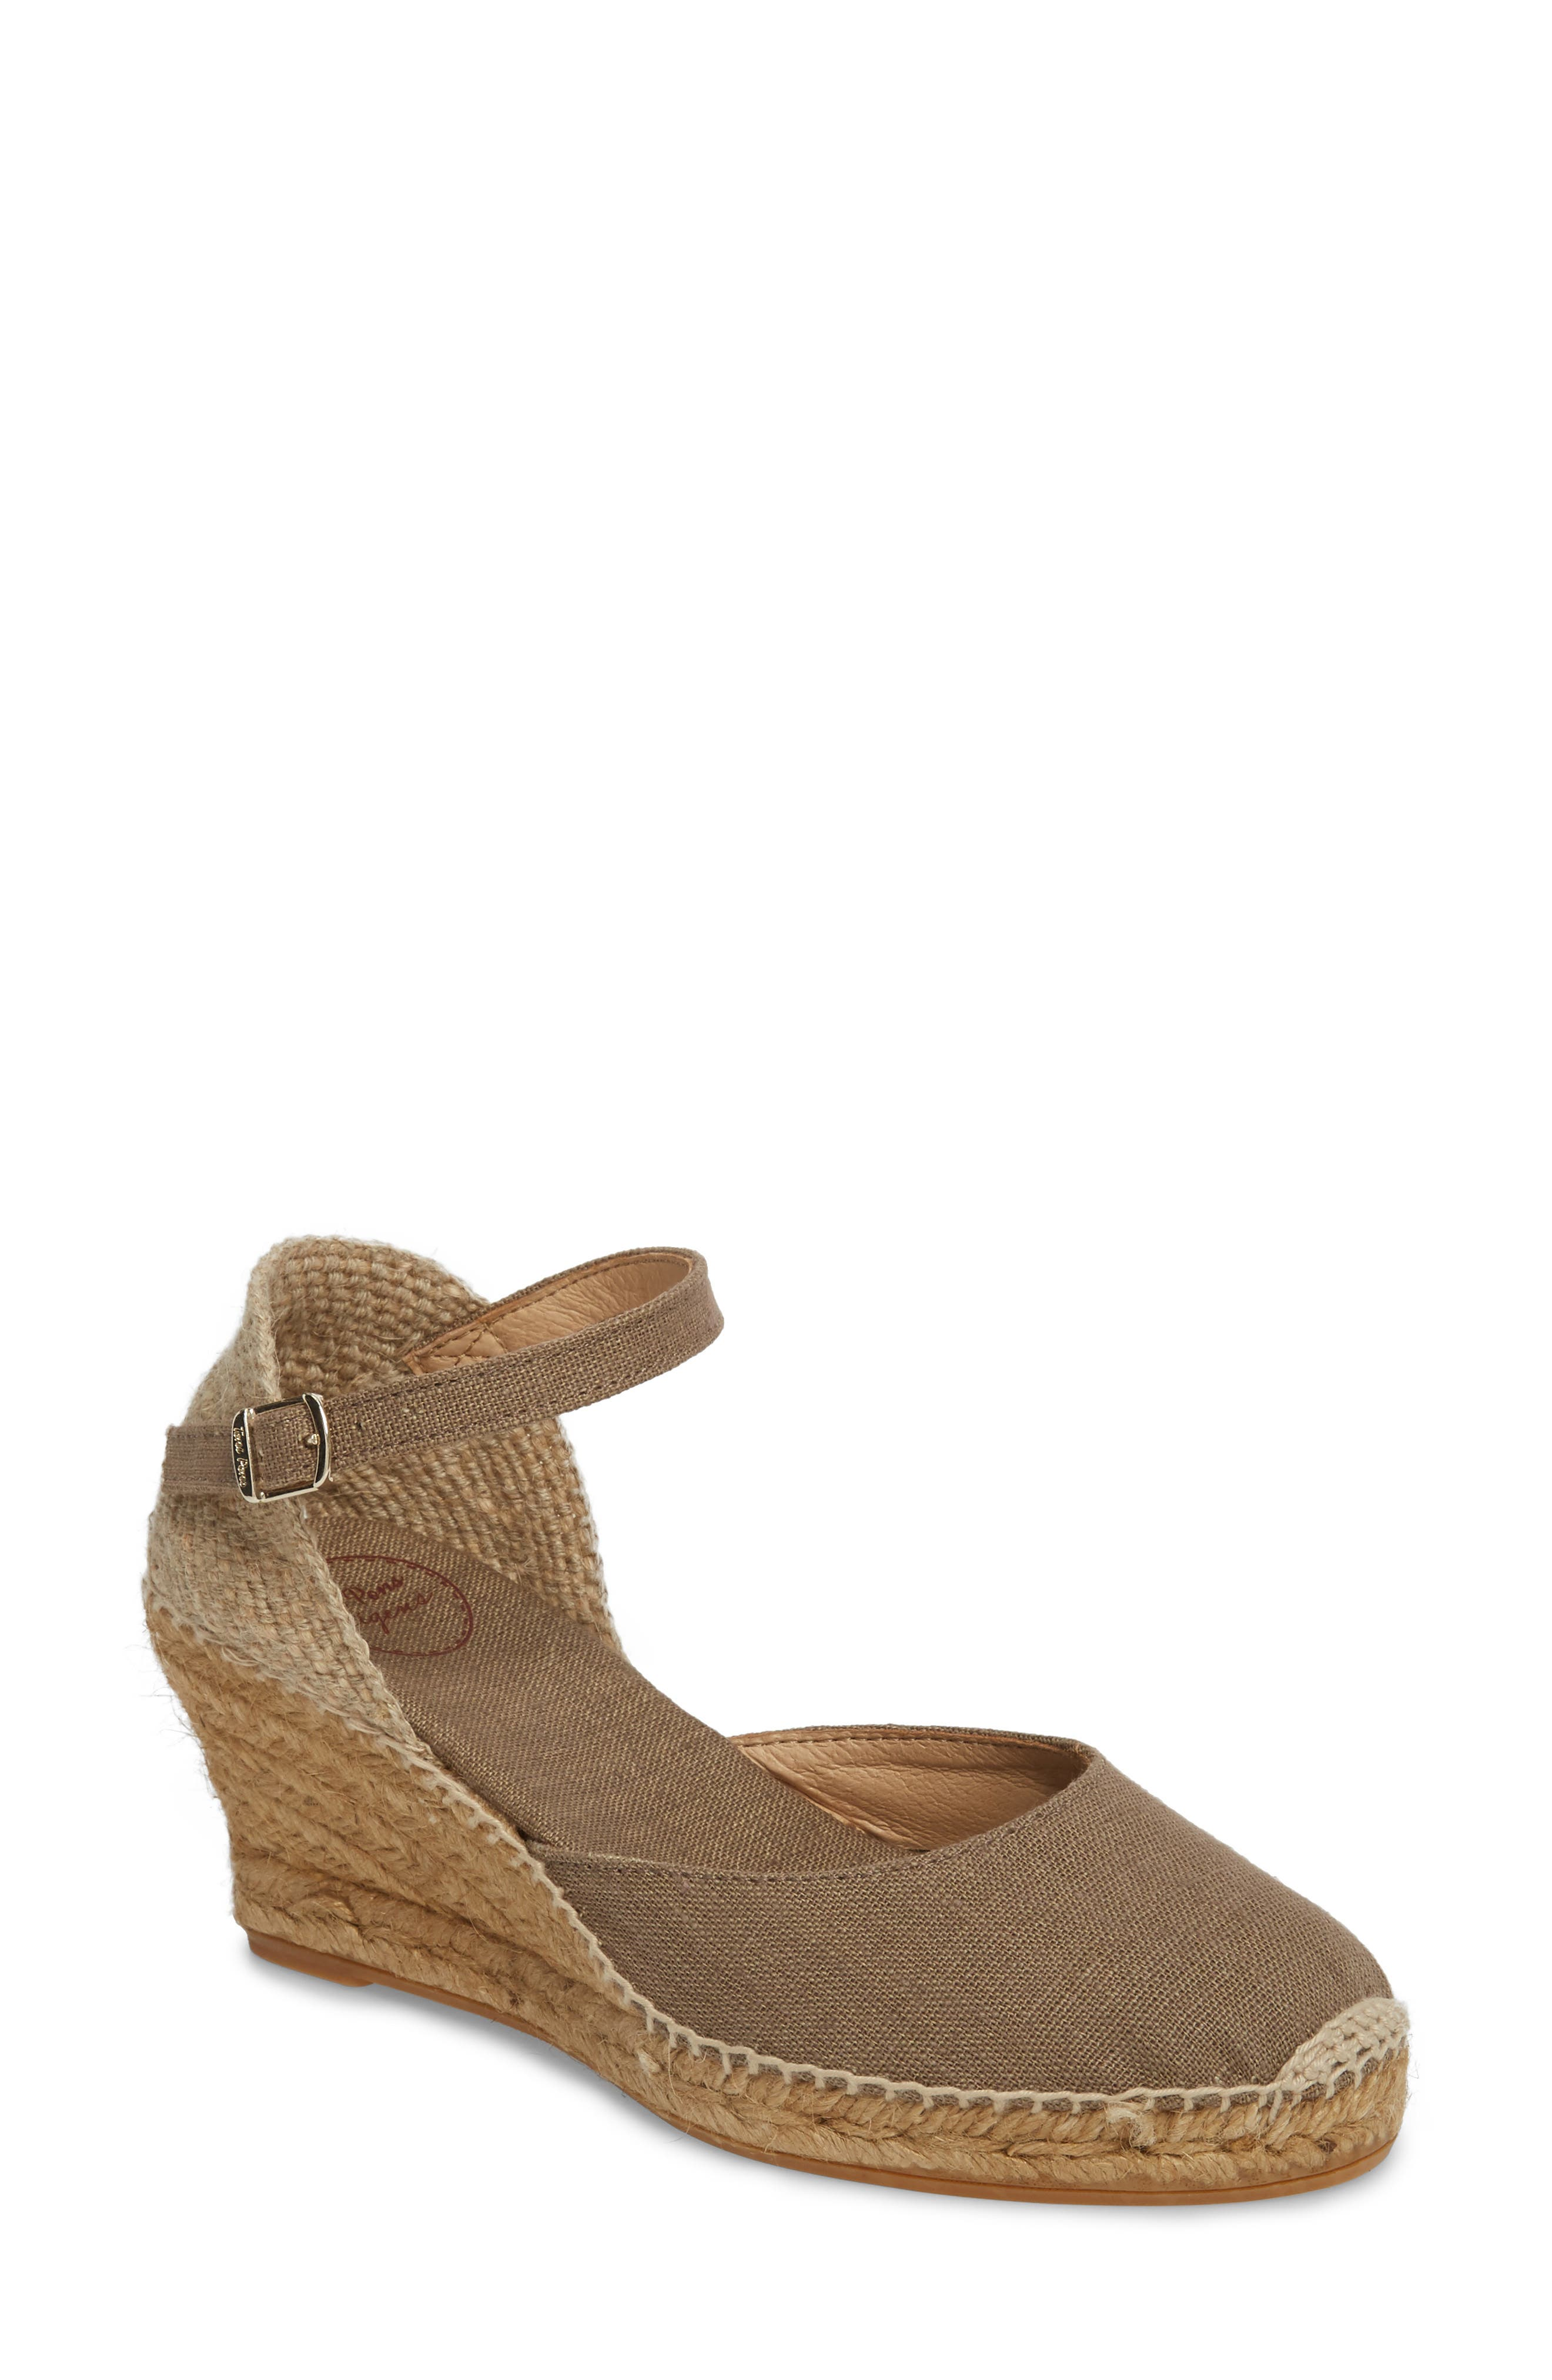 A versatile espadrille sandal gets a little lift from a jute-wrapped wedge. The cushy footbed and flexible sole add comfort to this chic peep toe from Toni Pons, a company that\\\'s been making stylish espadrilles for over 50 years. Style Name: Toni Pons \\\'Caldes\\\' Linen Wedge Sandal (Women). Style Number: 1056904. Available in stores.